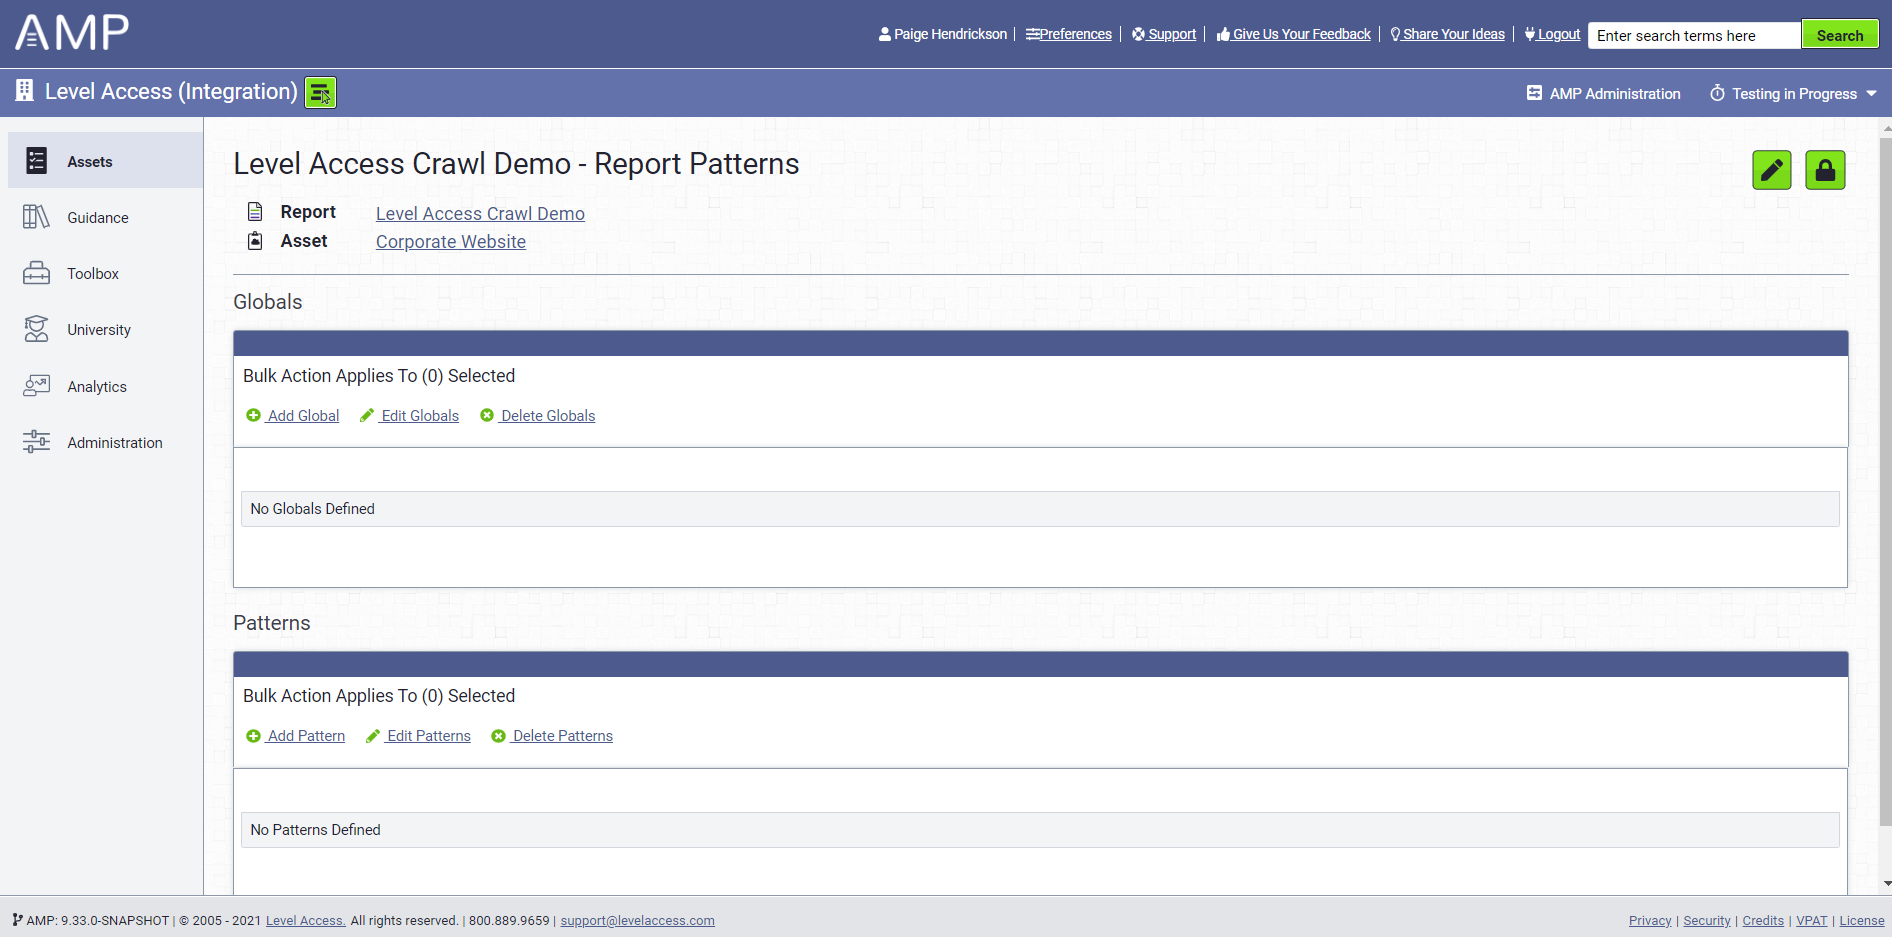 Report Patterns Page